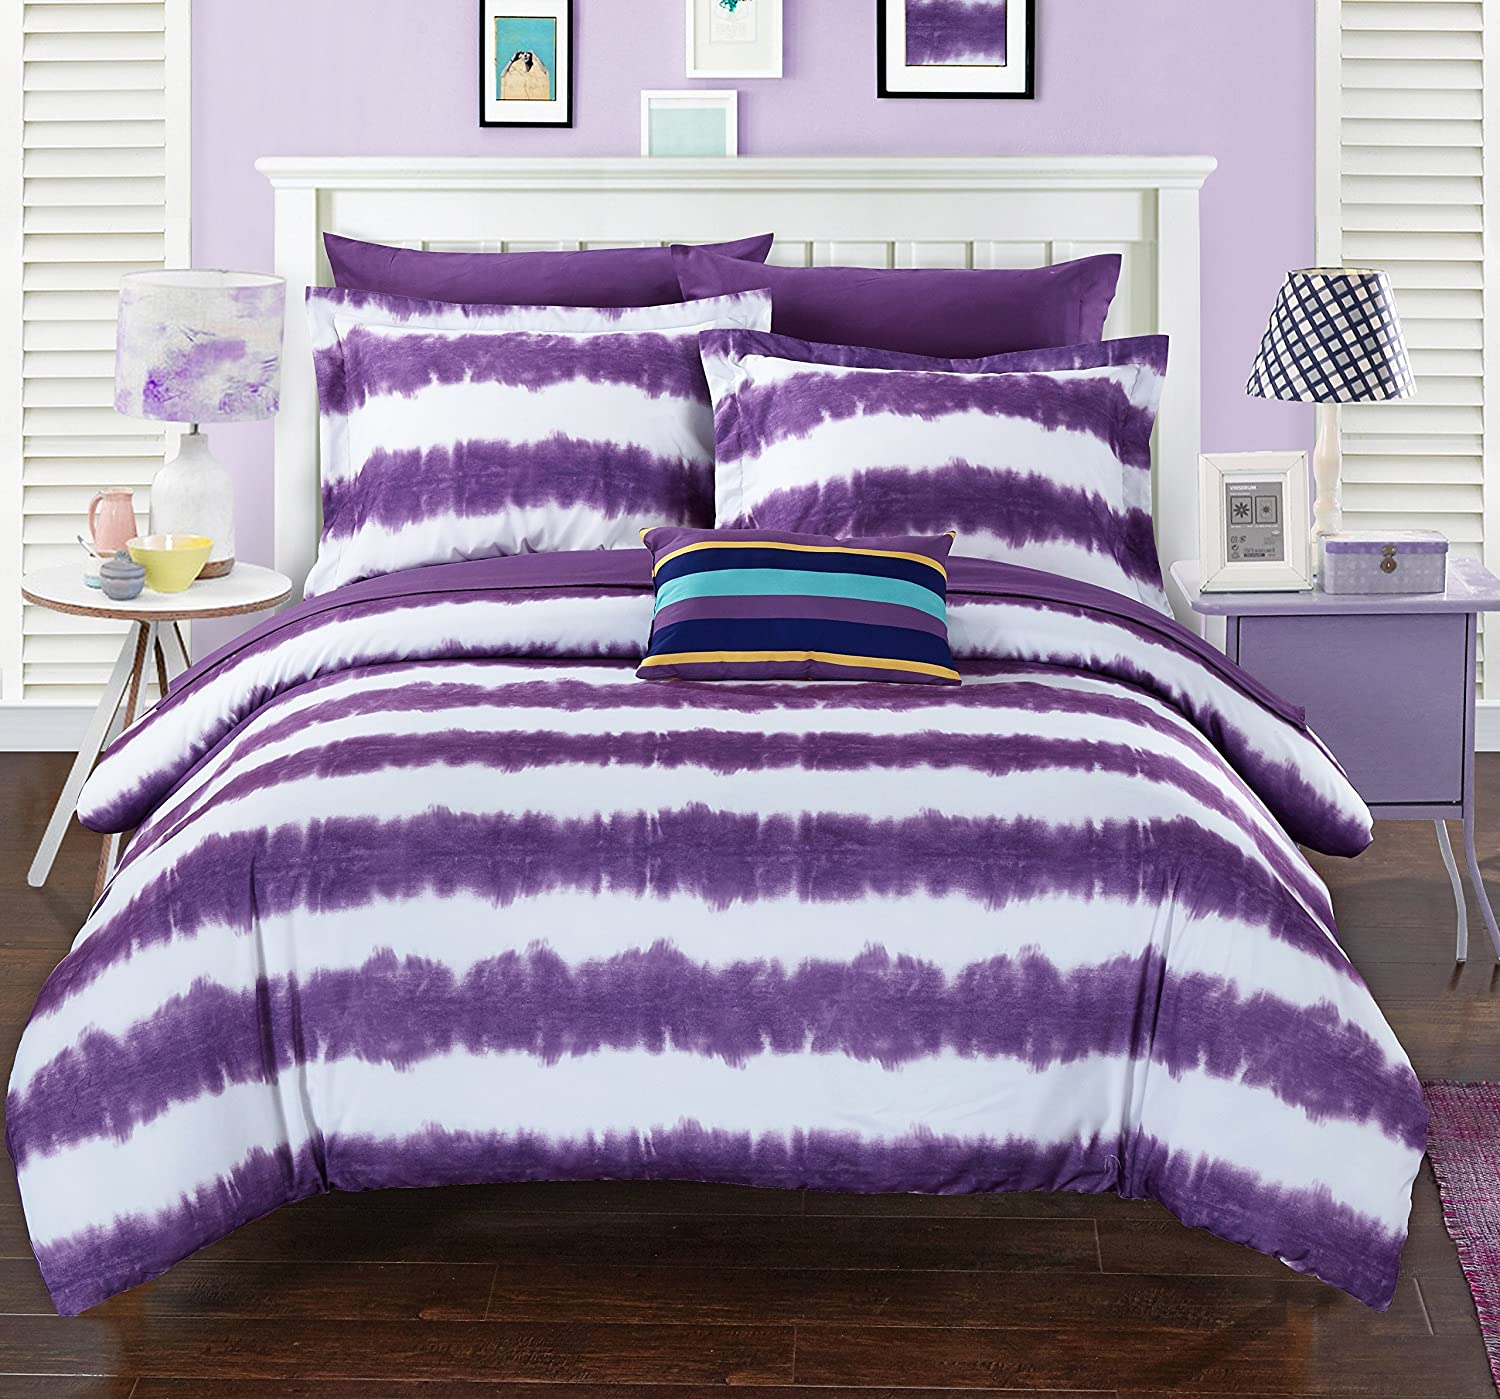 p mauve enchante lilac set bedding dusty comforter ruffled